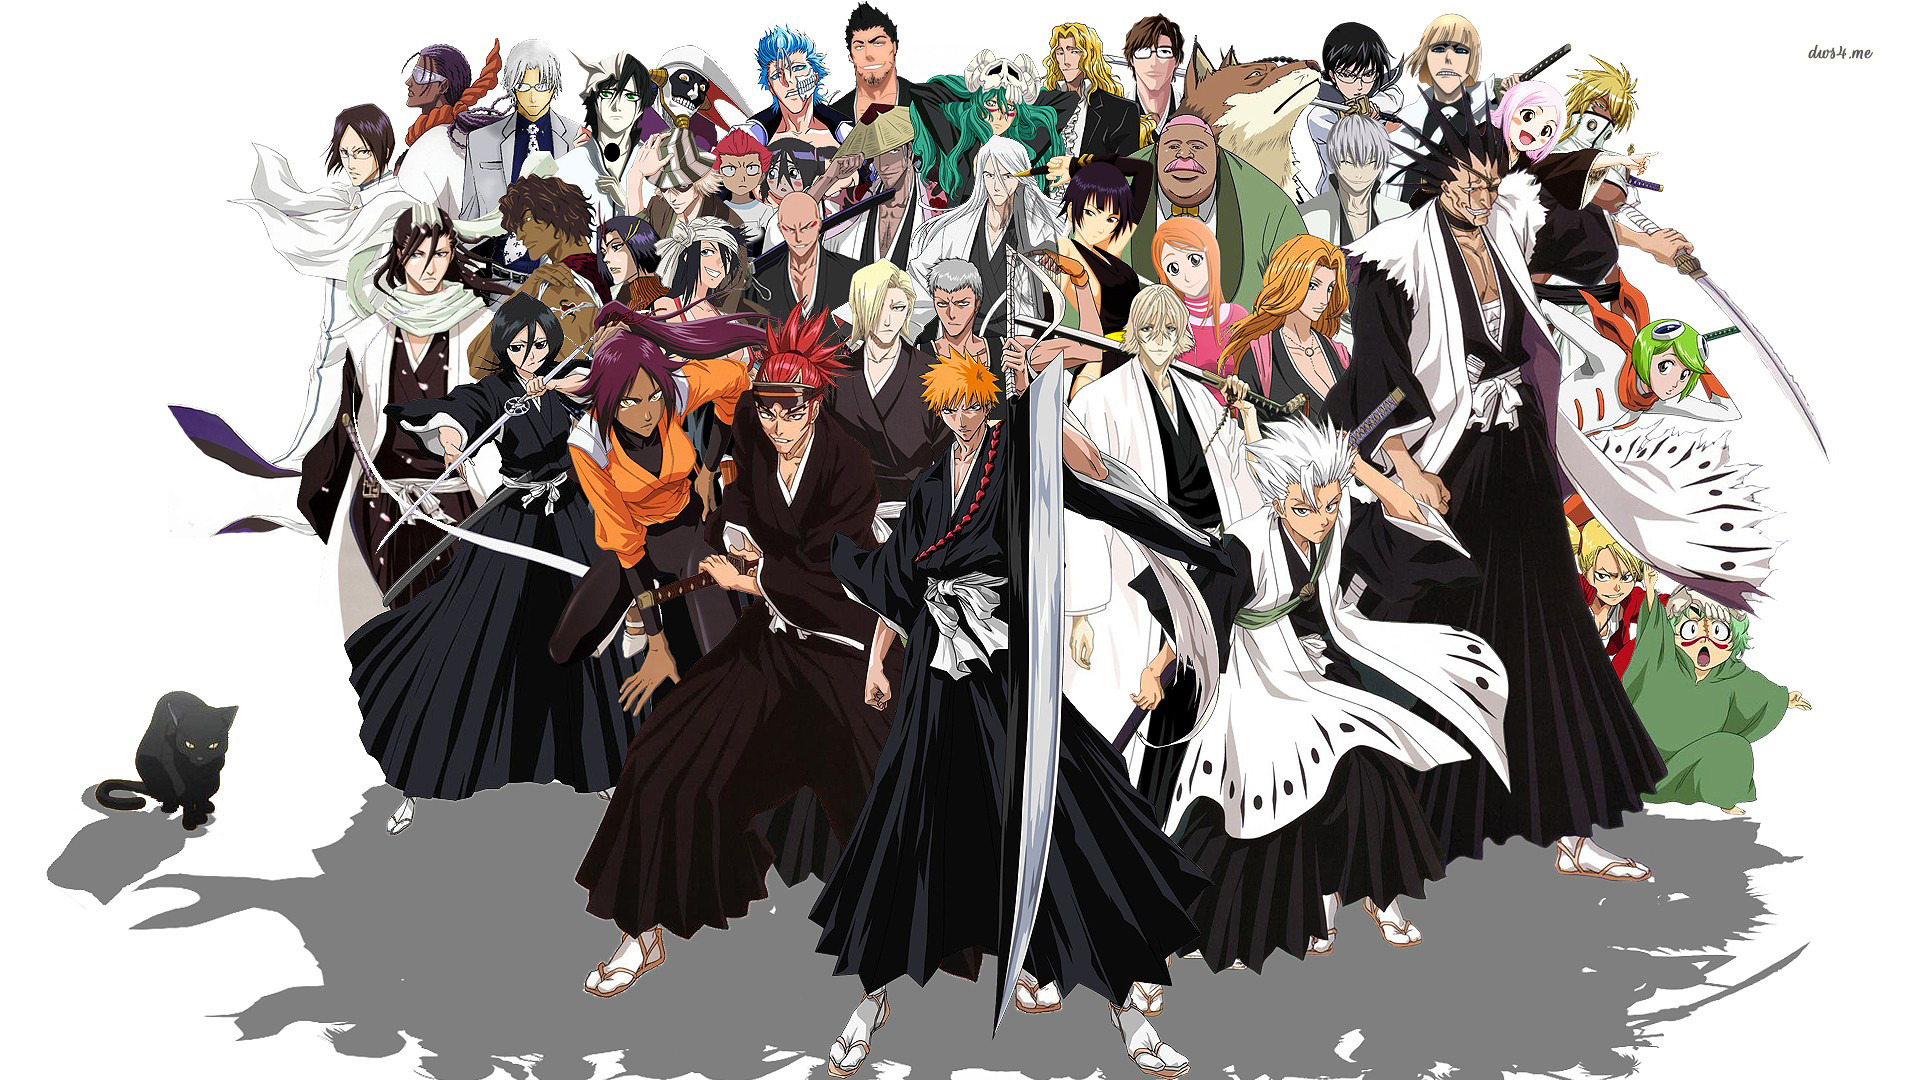 Bleach Hero Anime Wallpaper Hd